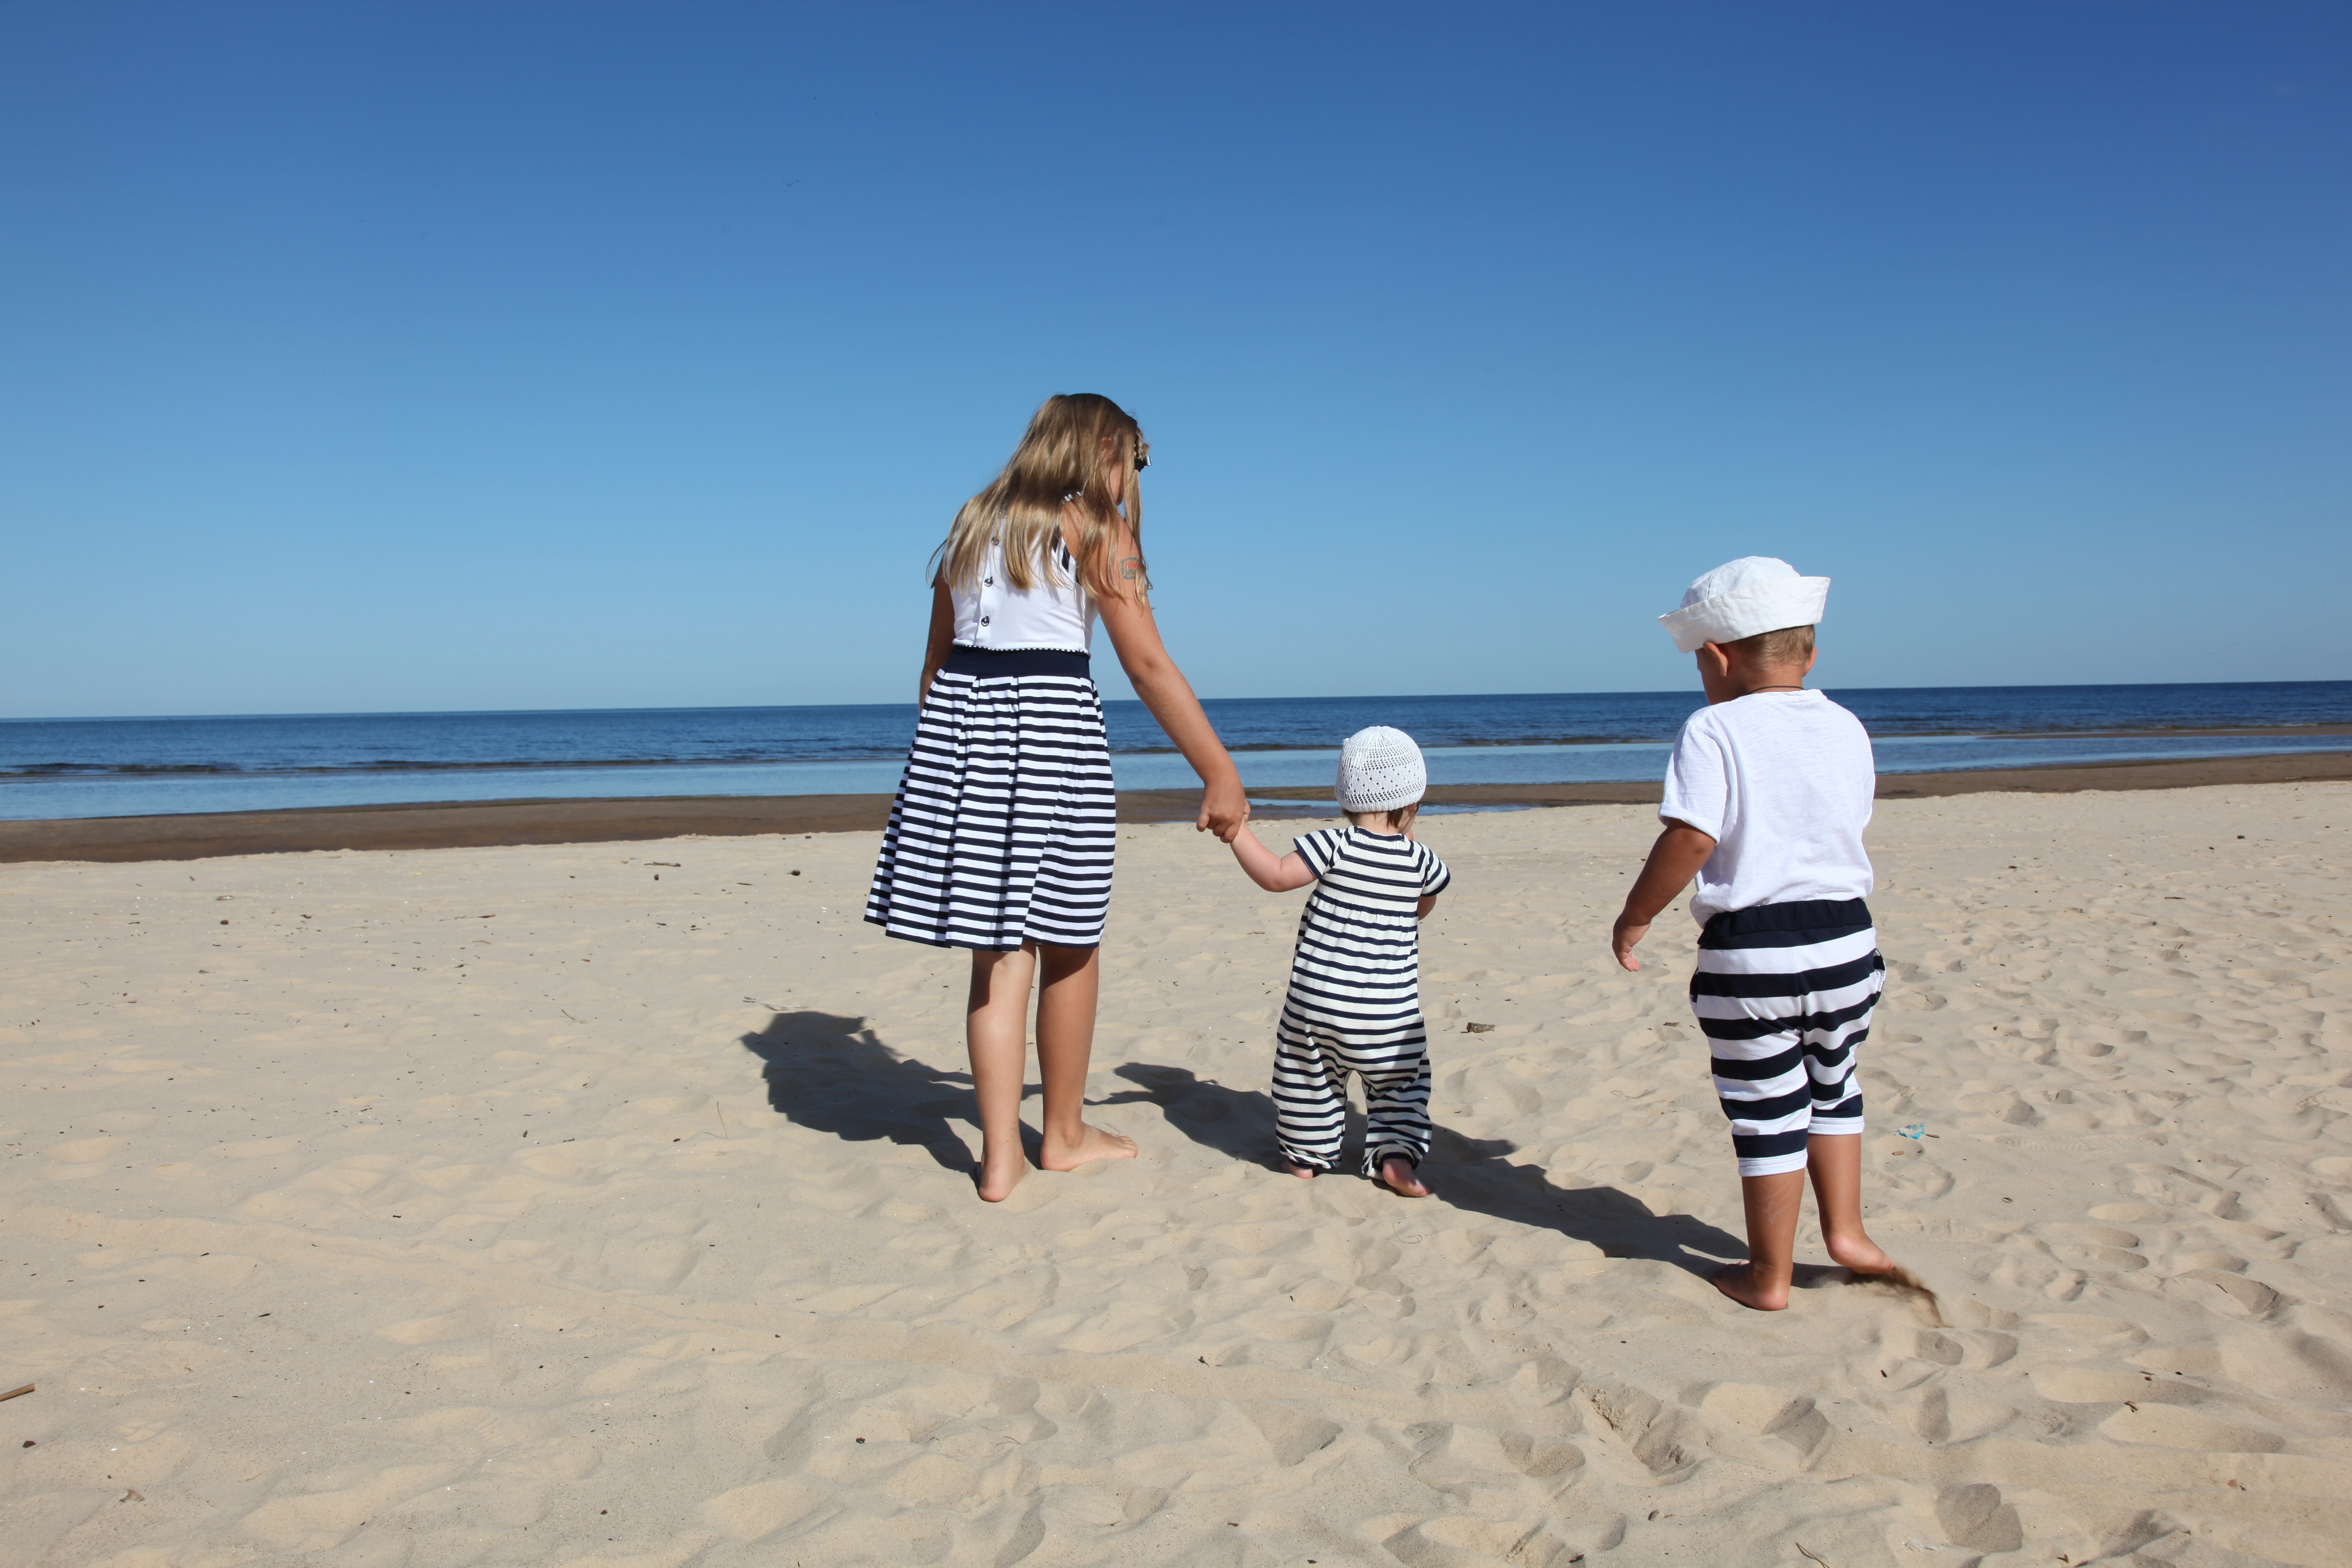 3 Children On A Beach Enjoying The Sunshine. By The Sea With Blue Sky